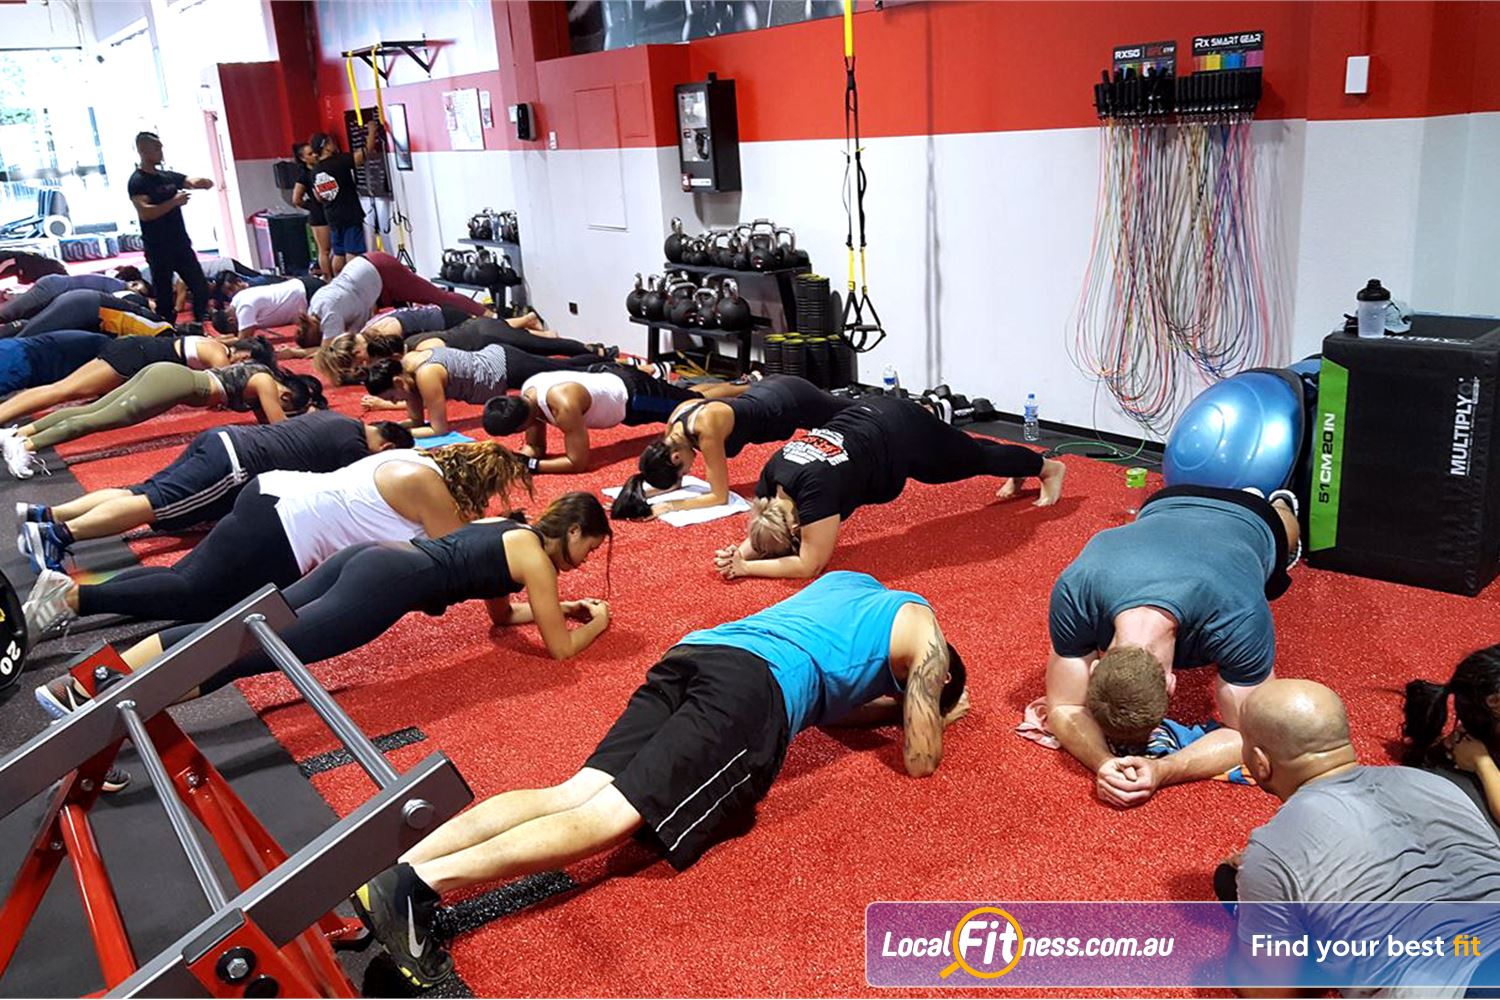 UFC Gym Near Doonside Join our popular functional training and HIIT classes.